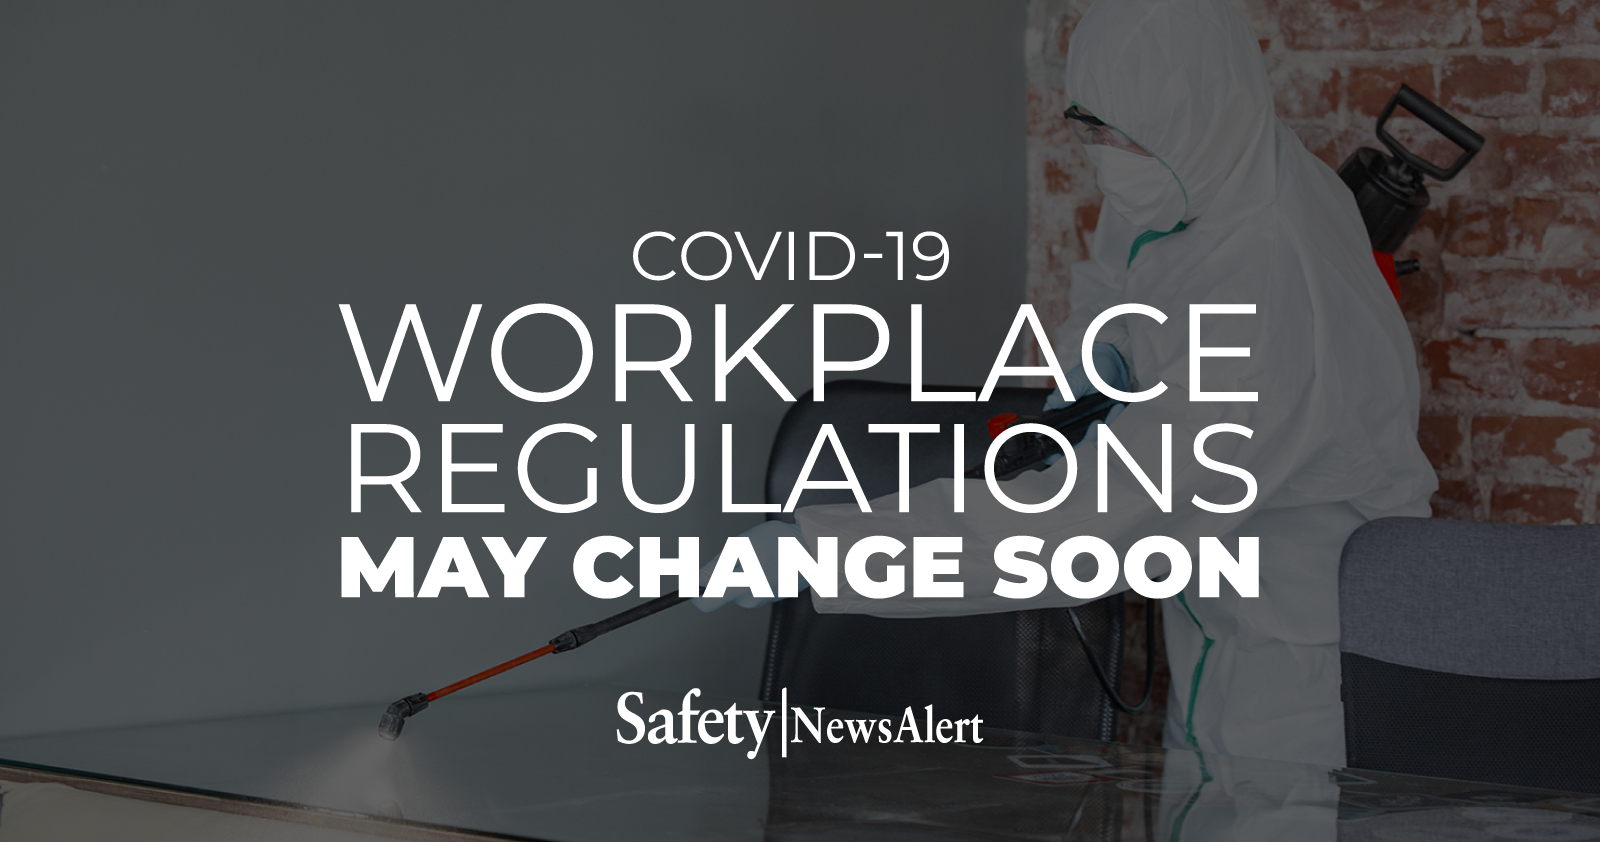 COVID-19 Workplace Regulations May Change Soon